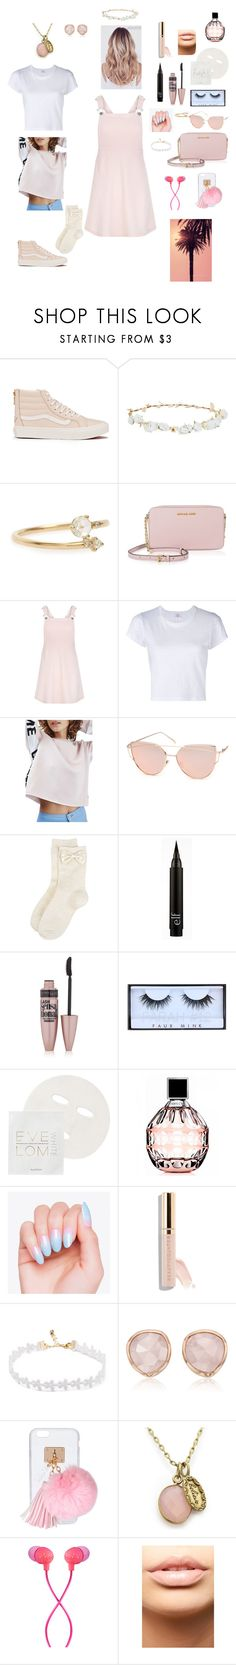 """""""♡♡♡ #pink #bts #jin"""" by btsrules ❤ liked on Polyvore featuring Vans, Design Lab, WWAKE, MICHAEL Michael Kors, New Look, RE/DONE, Topshop, Chicnova Fashion, Monsoon and Maybelline"""